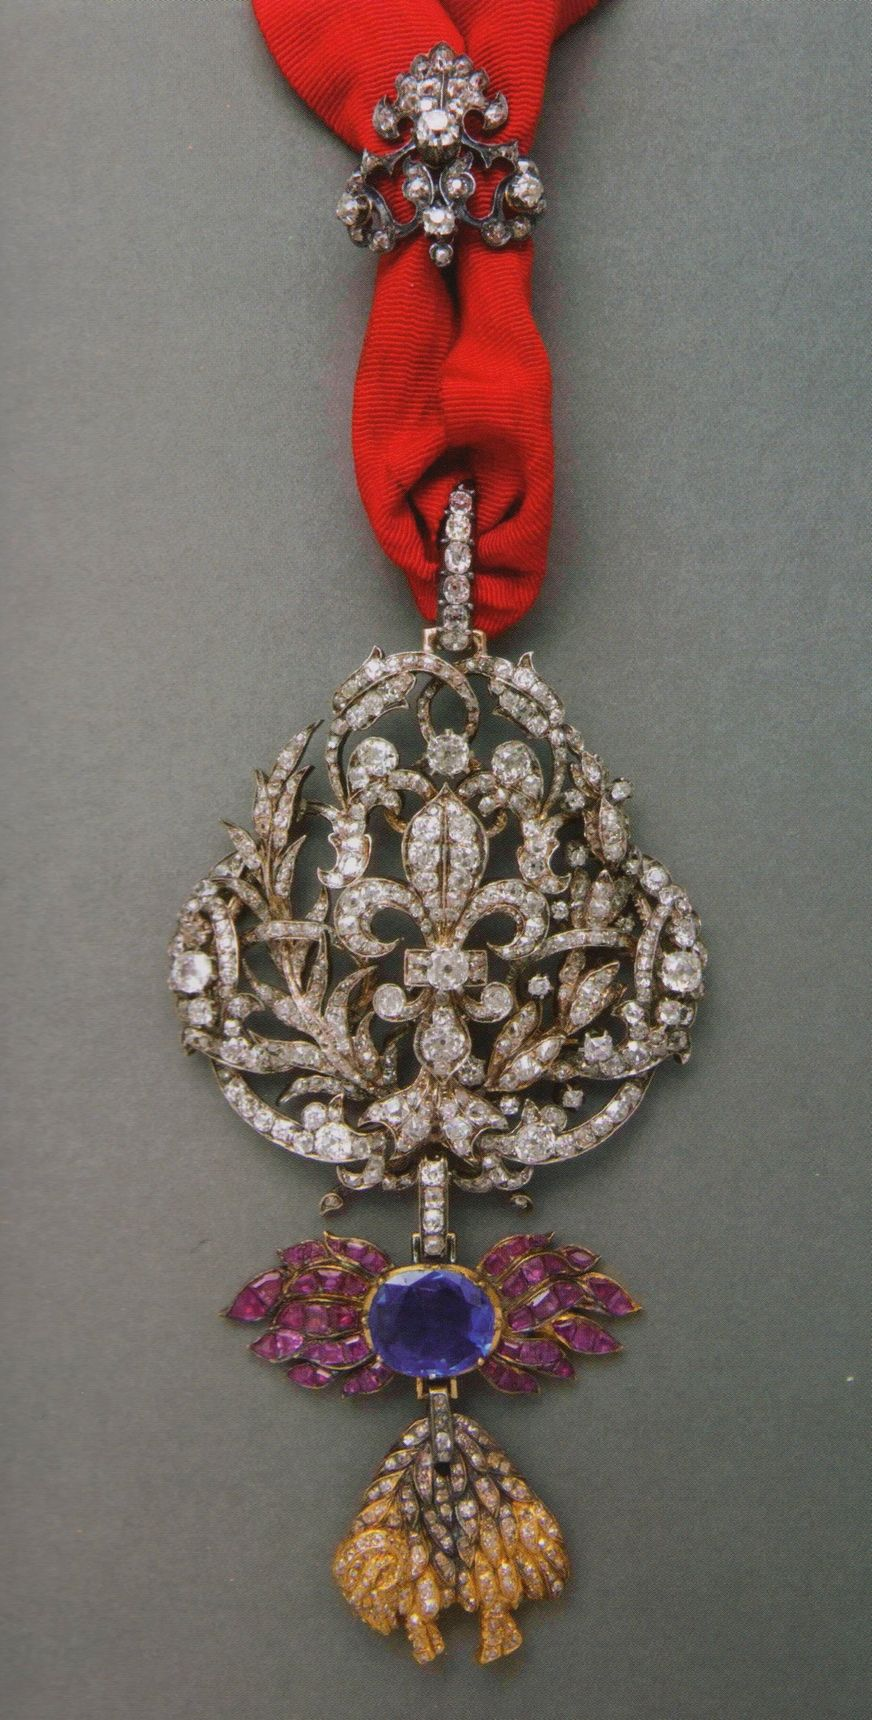 Royal Jewels of the World Message Board: Insignia of the